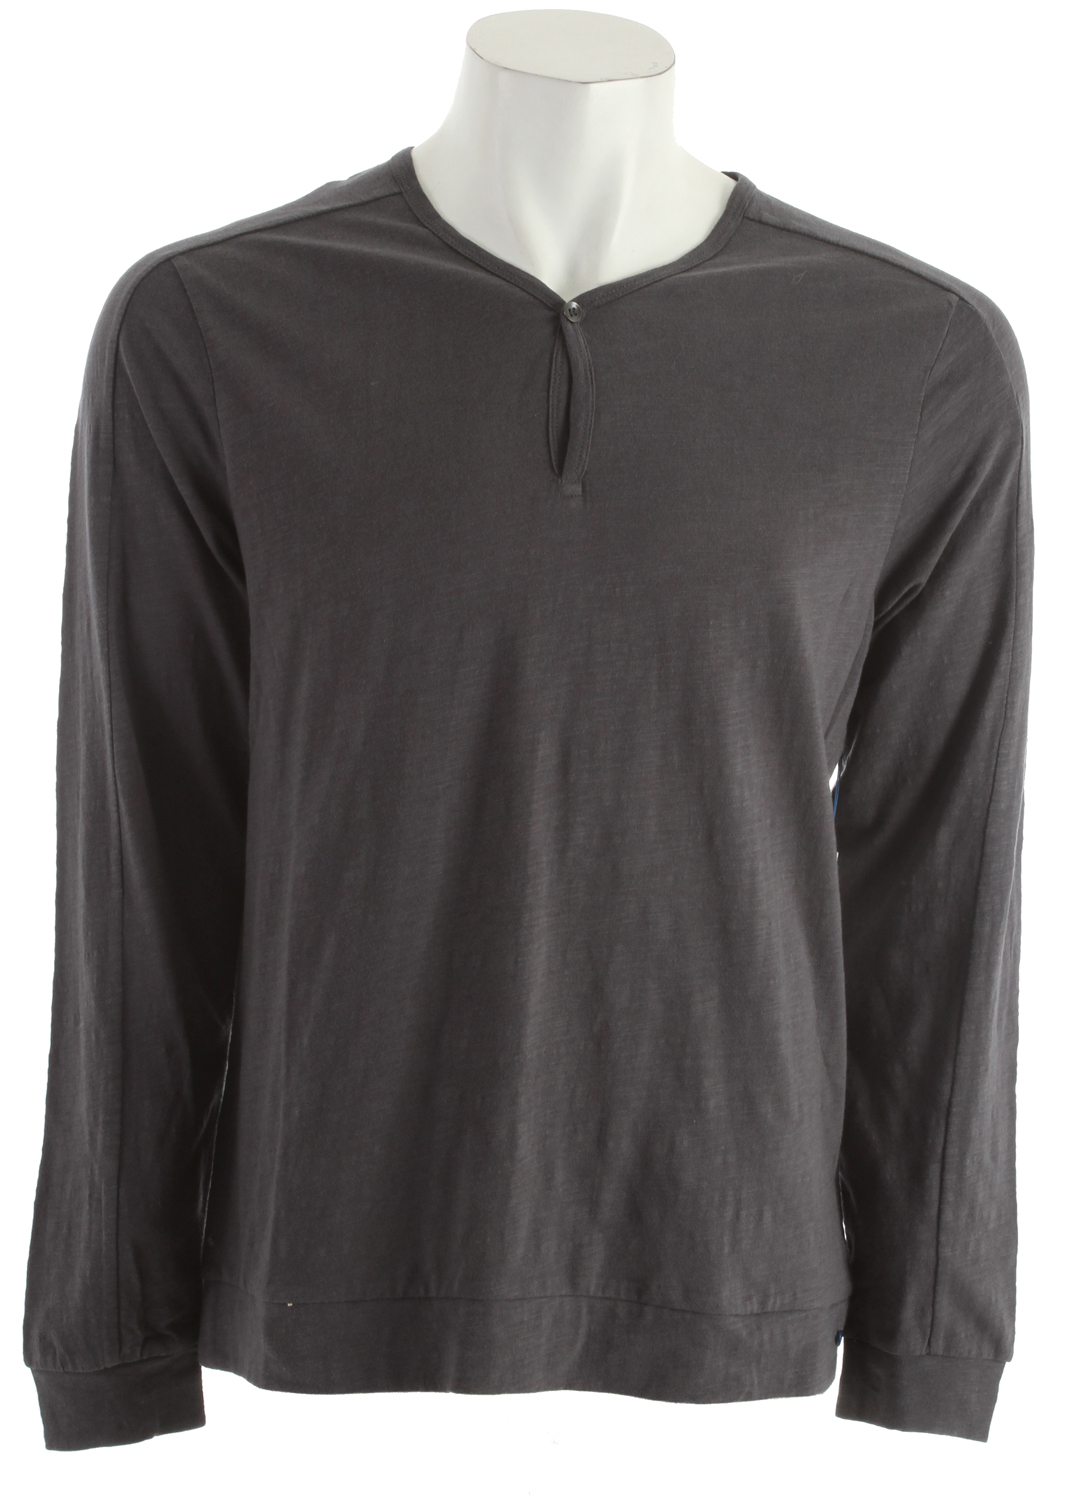 Surf Volcom Henson Henley L/S Shirt Metal Heather - $27.95